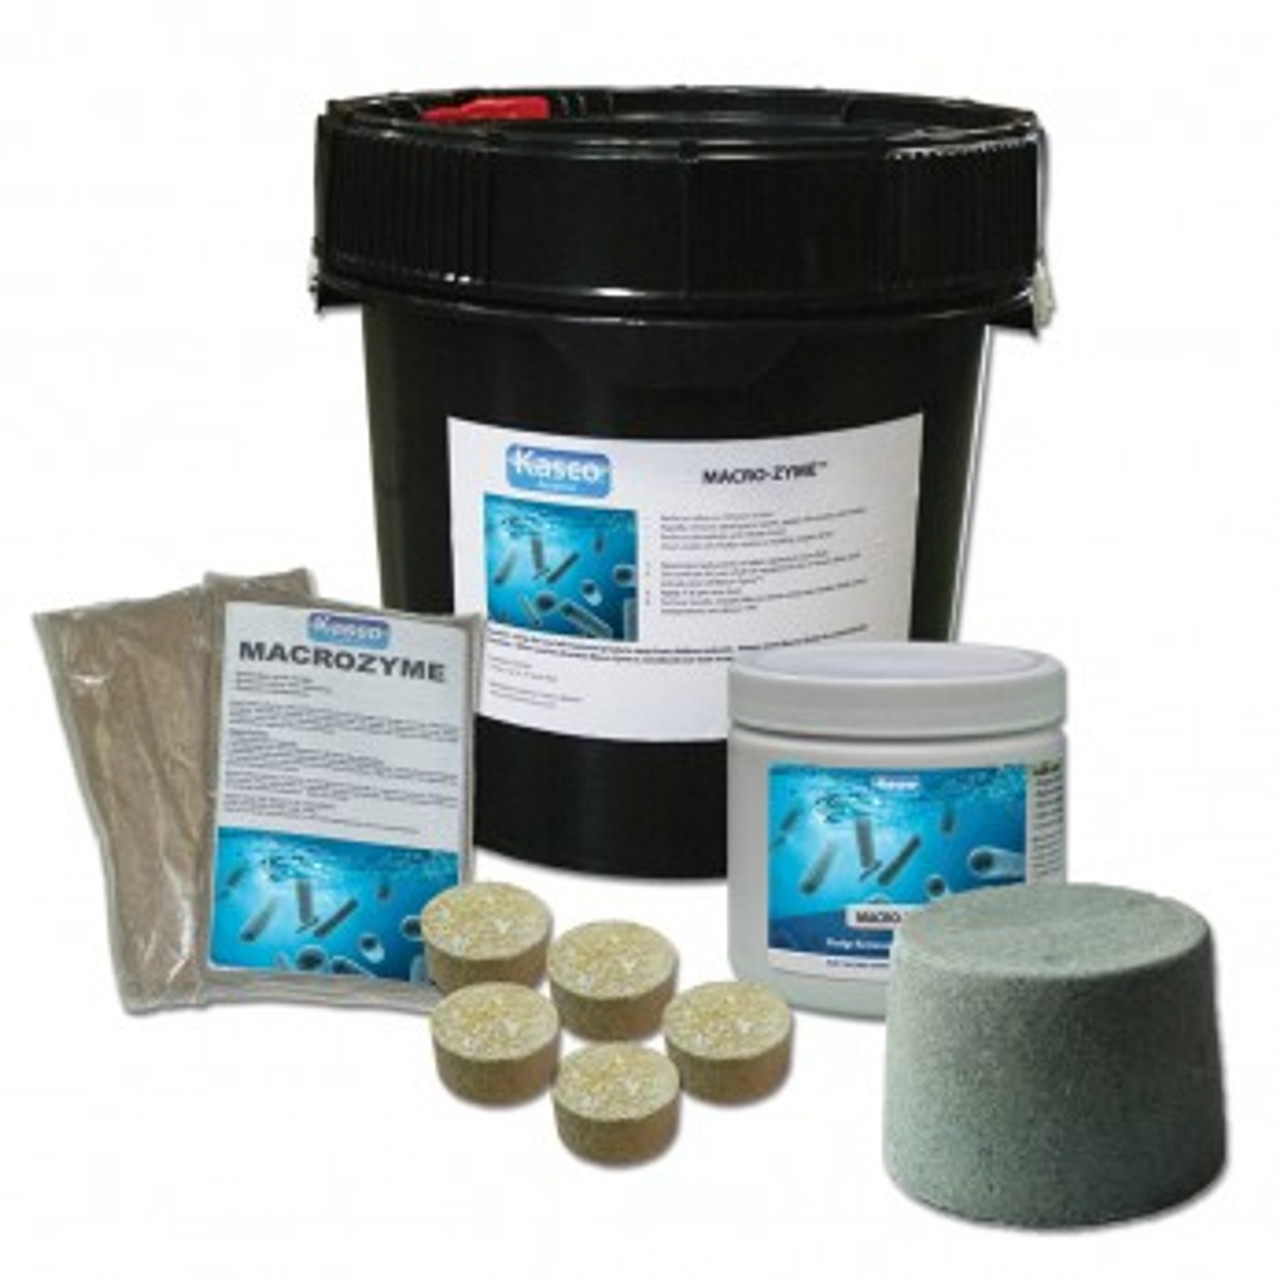 Kasco Marine Macro-Zyme different packages